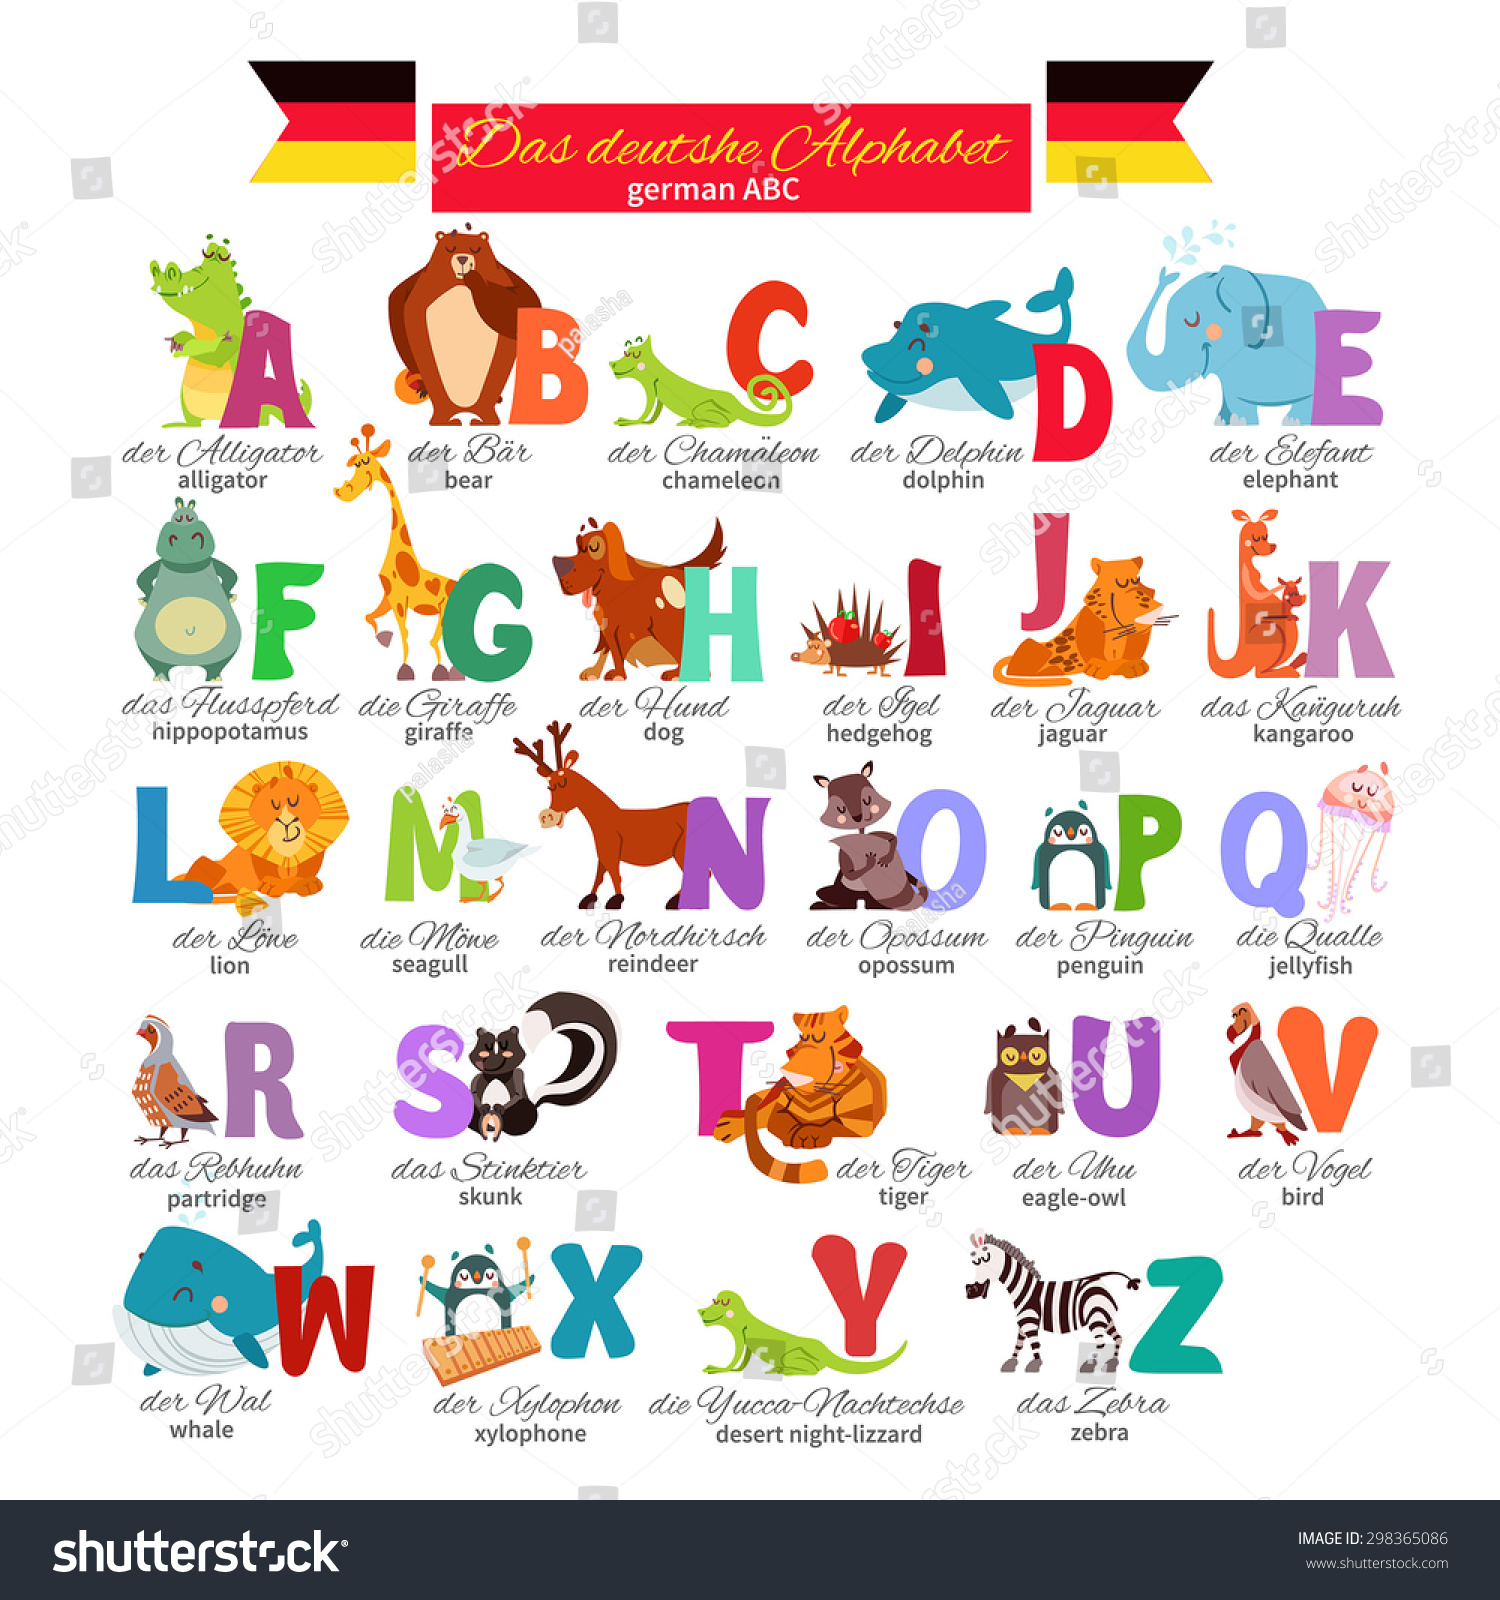 Image of: Birds German Illustrated Zoo Alphabet With Cute Cartoon Animals Vector Illustration For Education Foreign Language Shutterstock German Illustrated Zoo Alphabet Cute Cartoon Stock Vector royalty